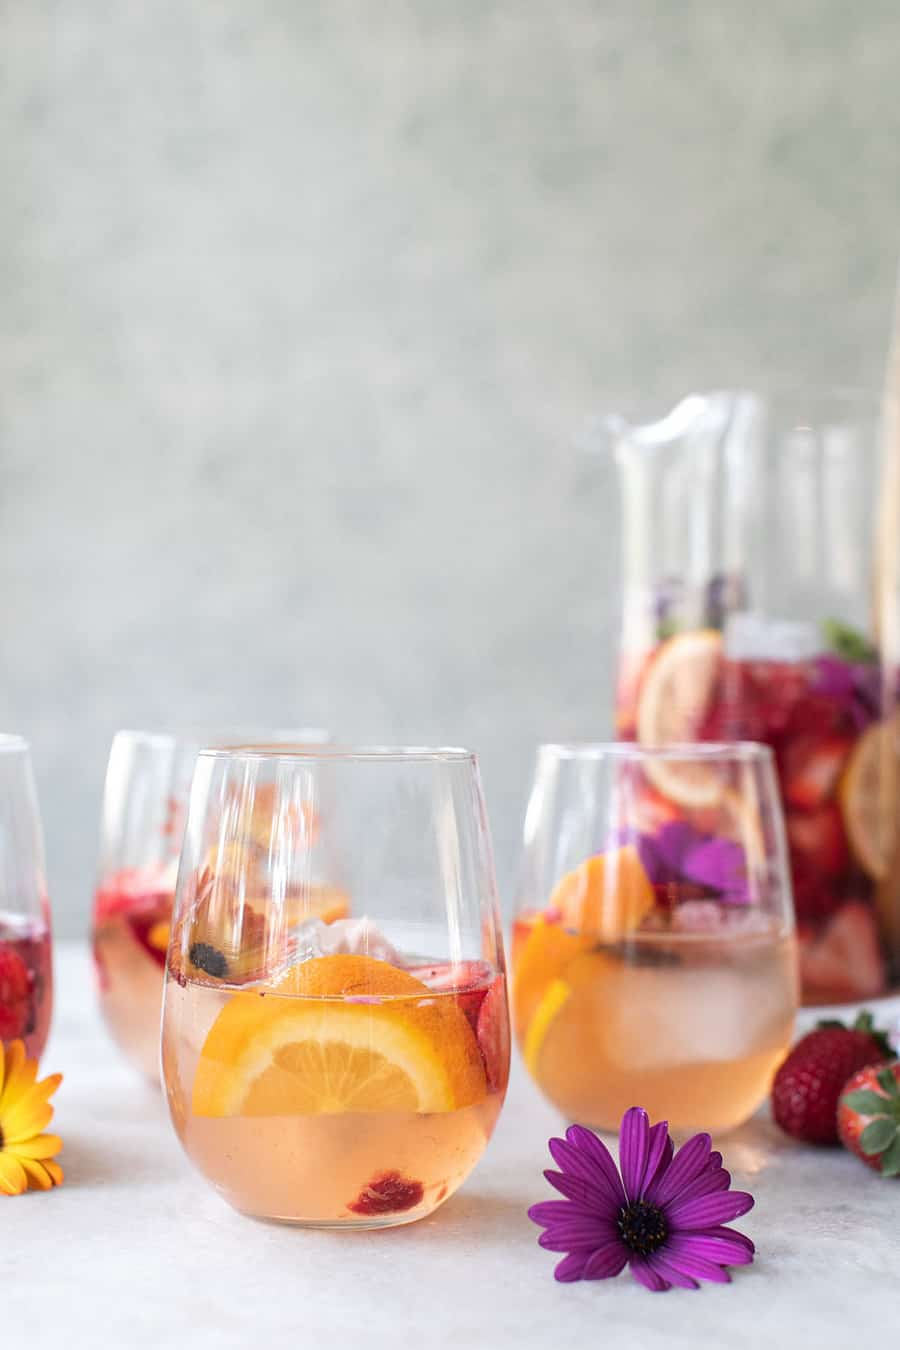 White sangria with oranges and flowers